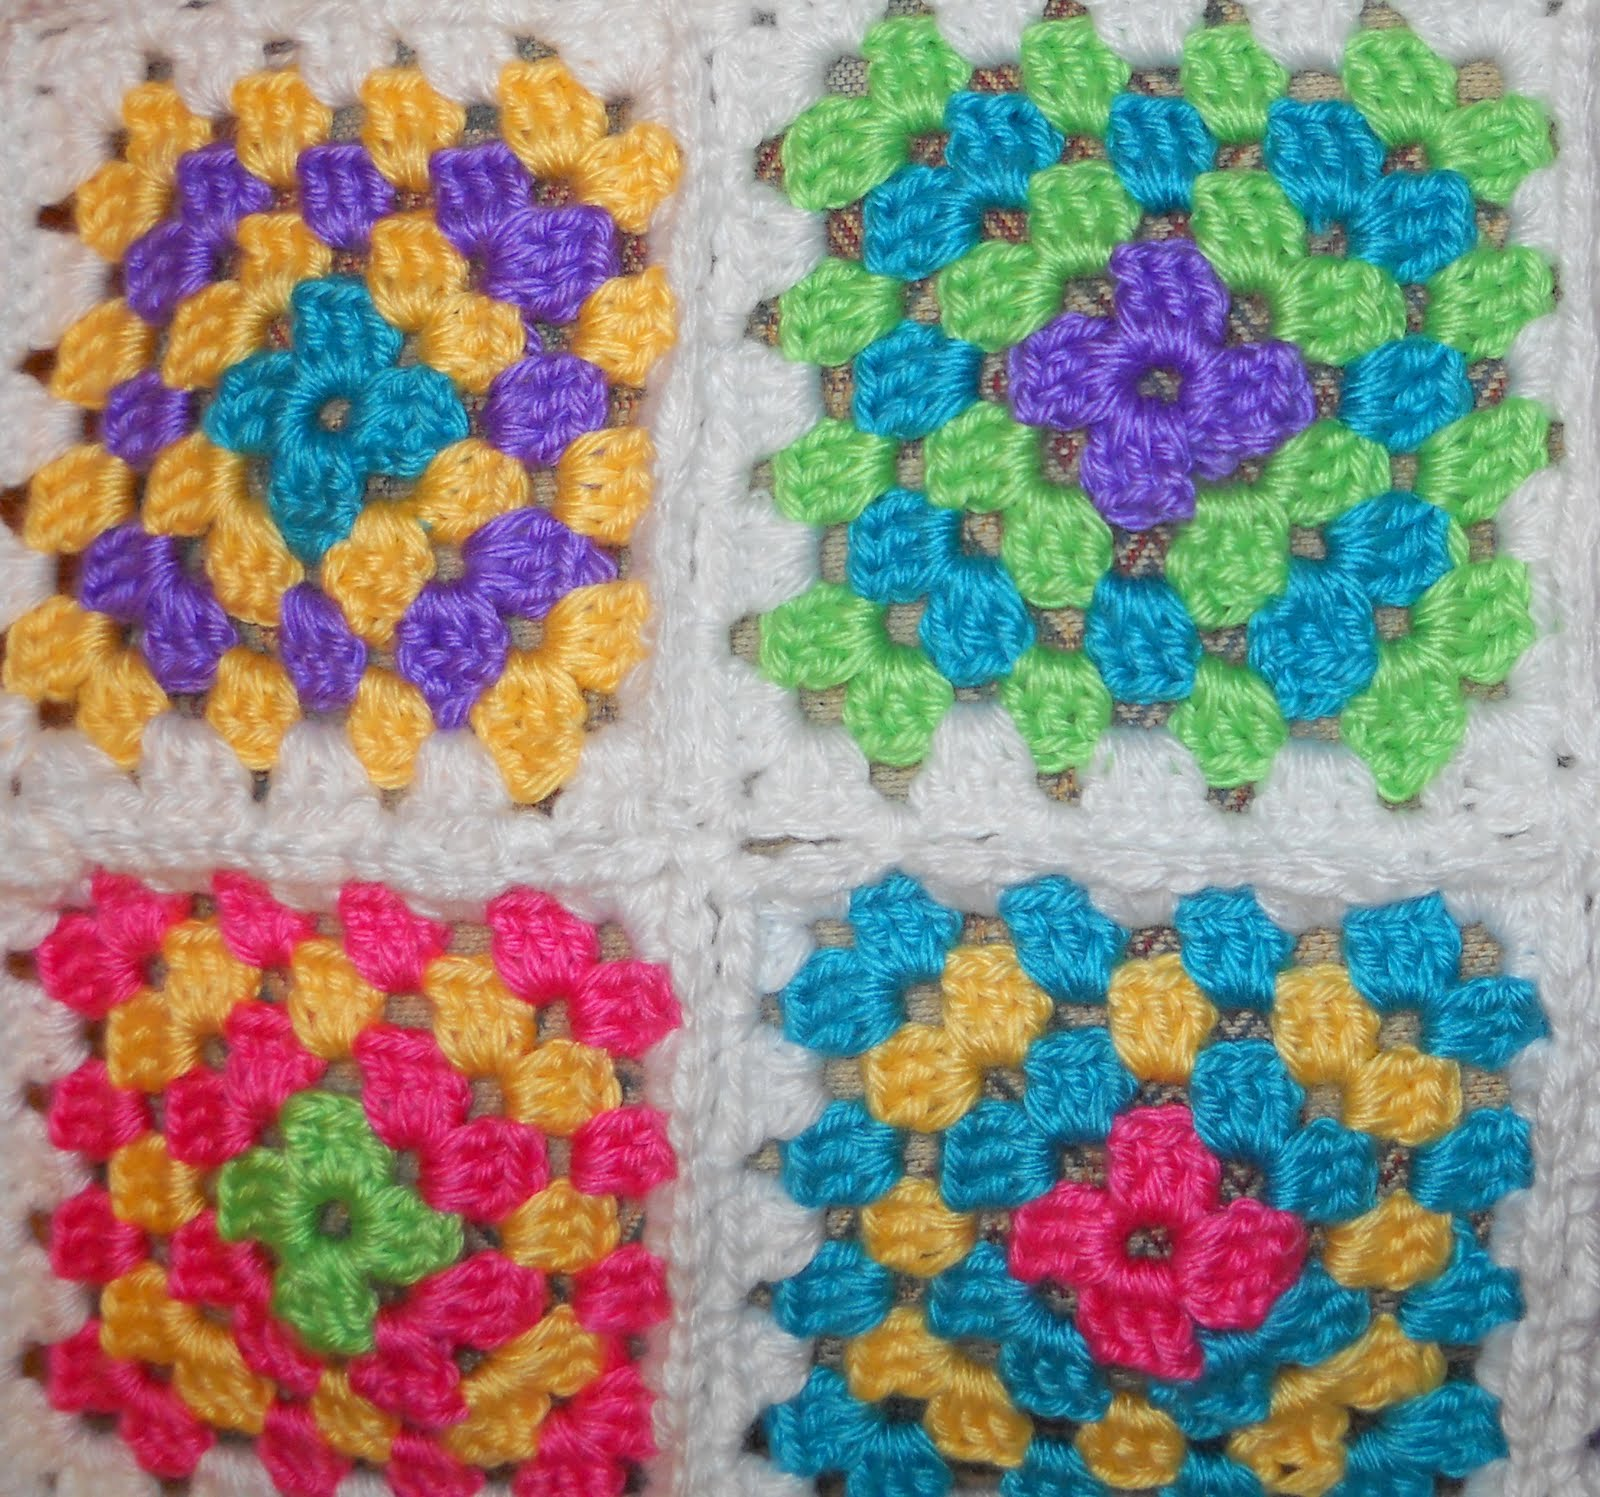 Crochet Patterns Squares : GRANNY SQUARES CROCHET PATTERN - Easy Crochet Patterns